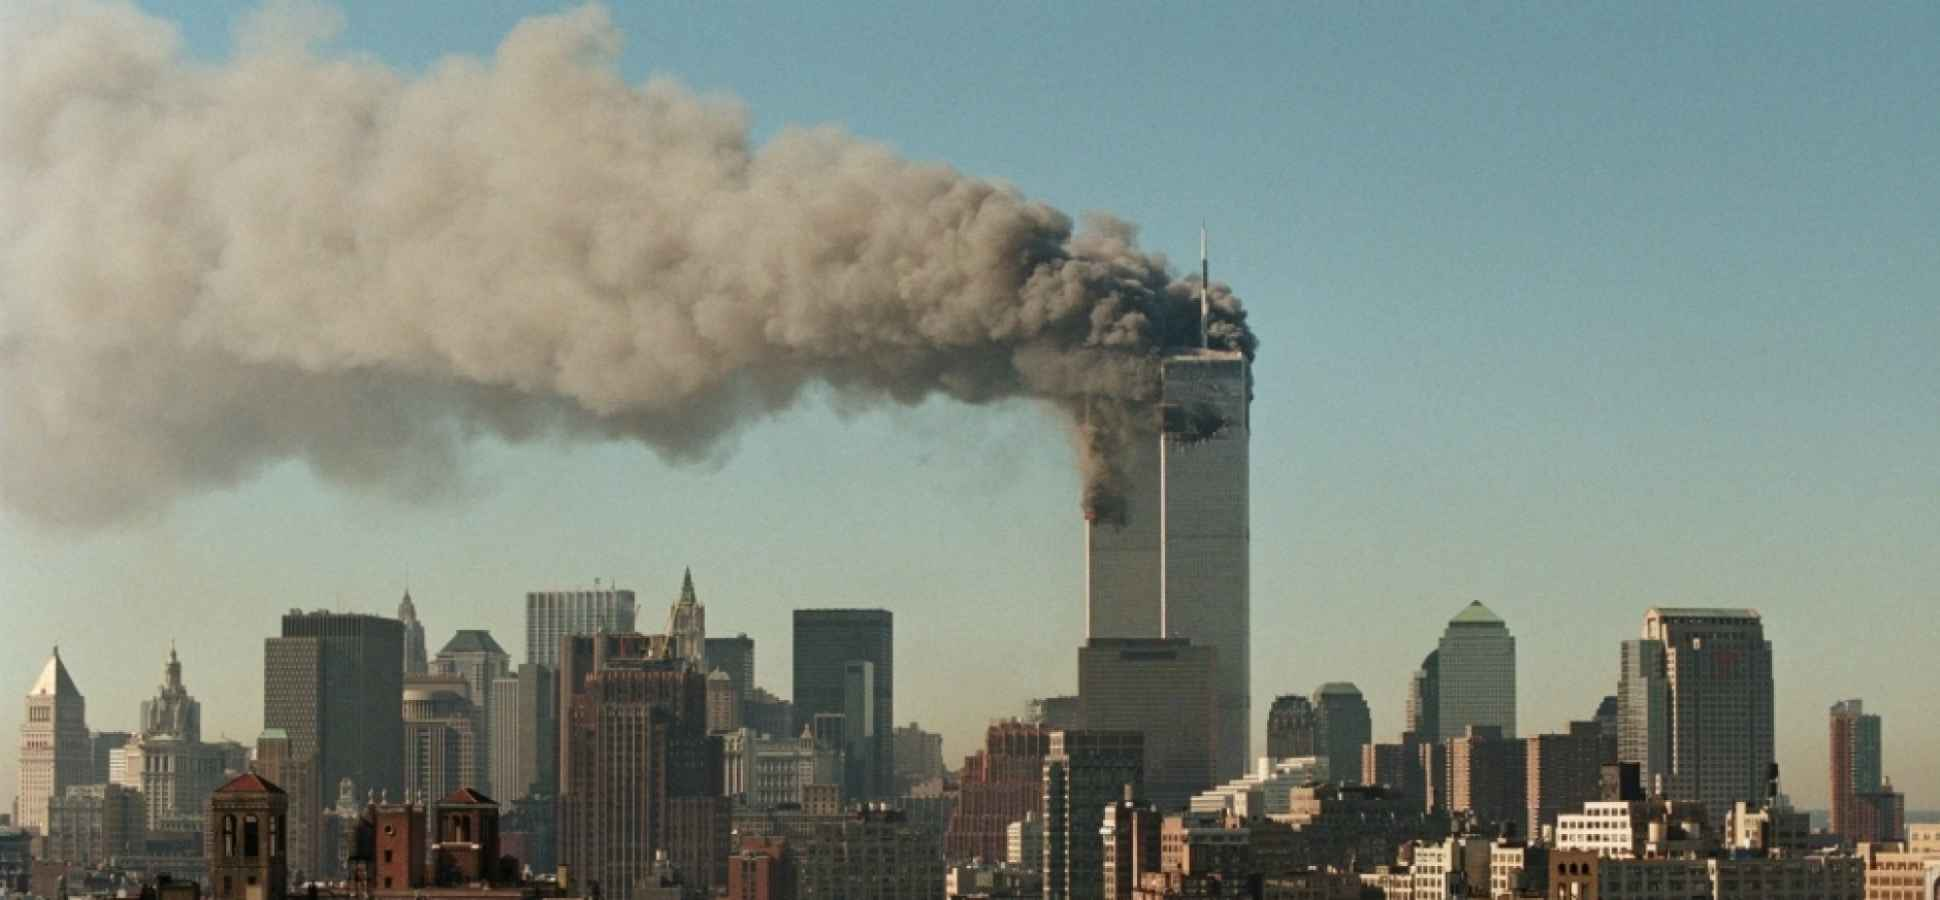 Remembering 9/11: A Survivor Shares What It Was Like Inside the World Trade Center When The Planes Hit